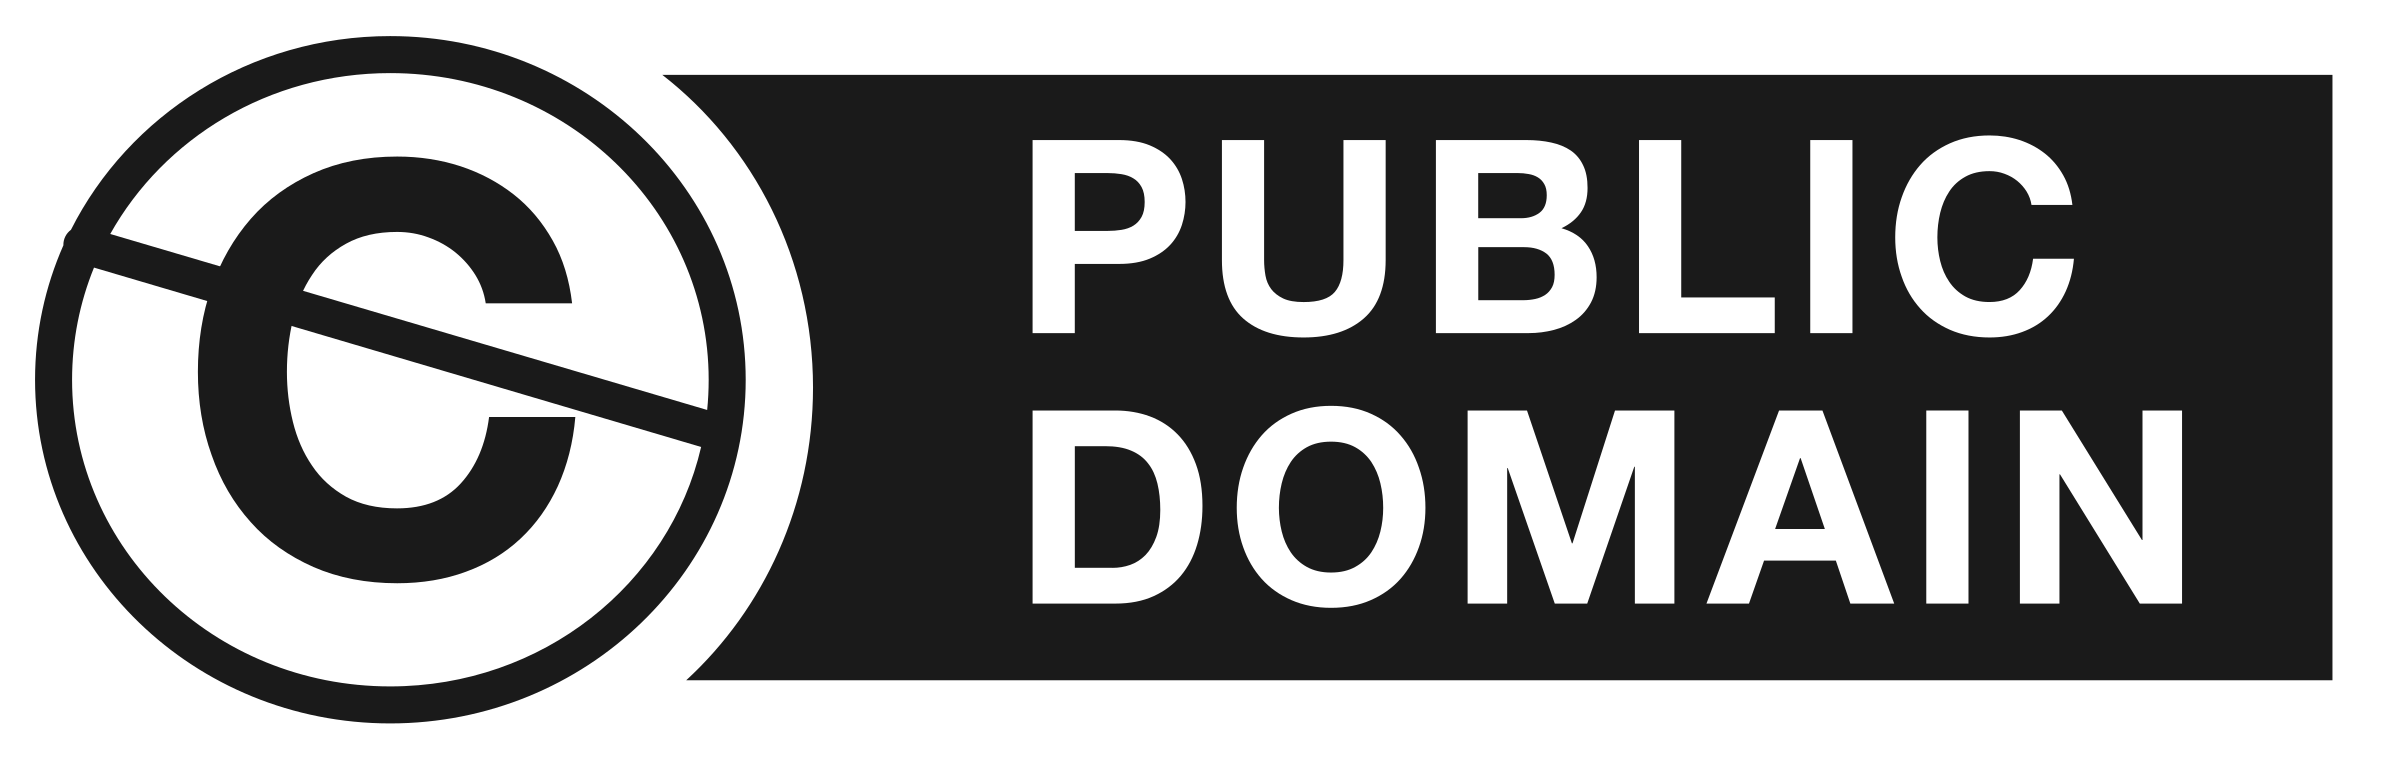 Public Domain logo by anarres